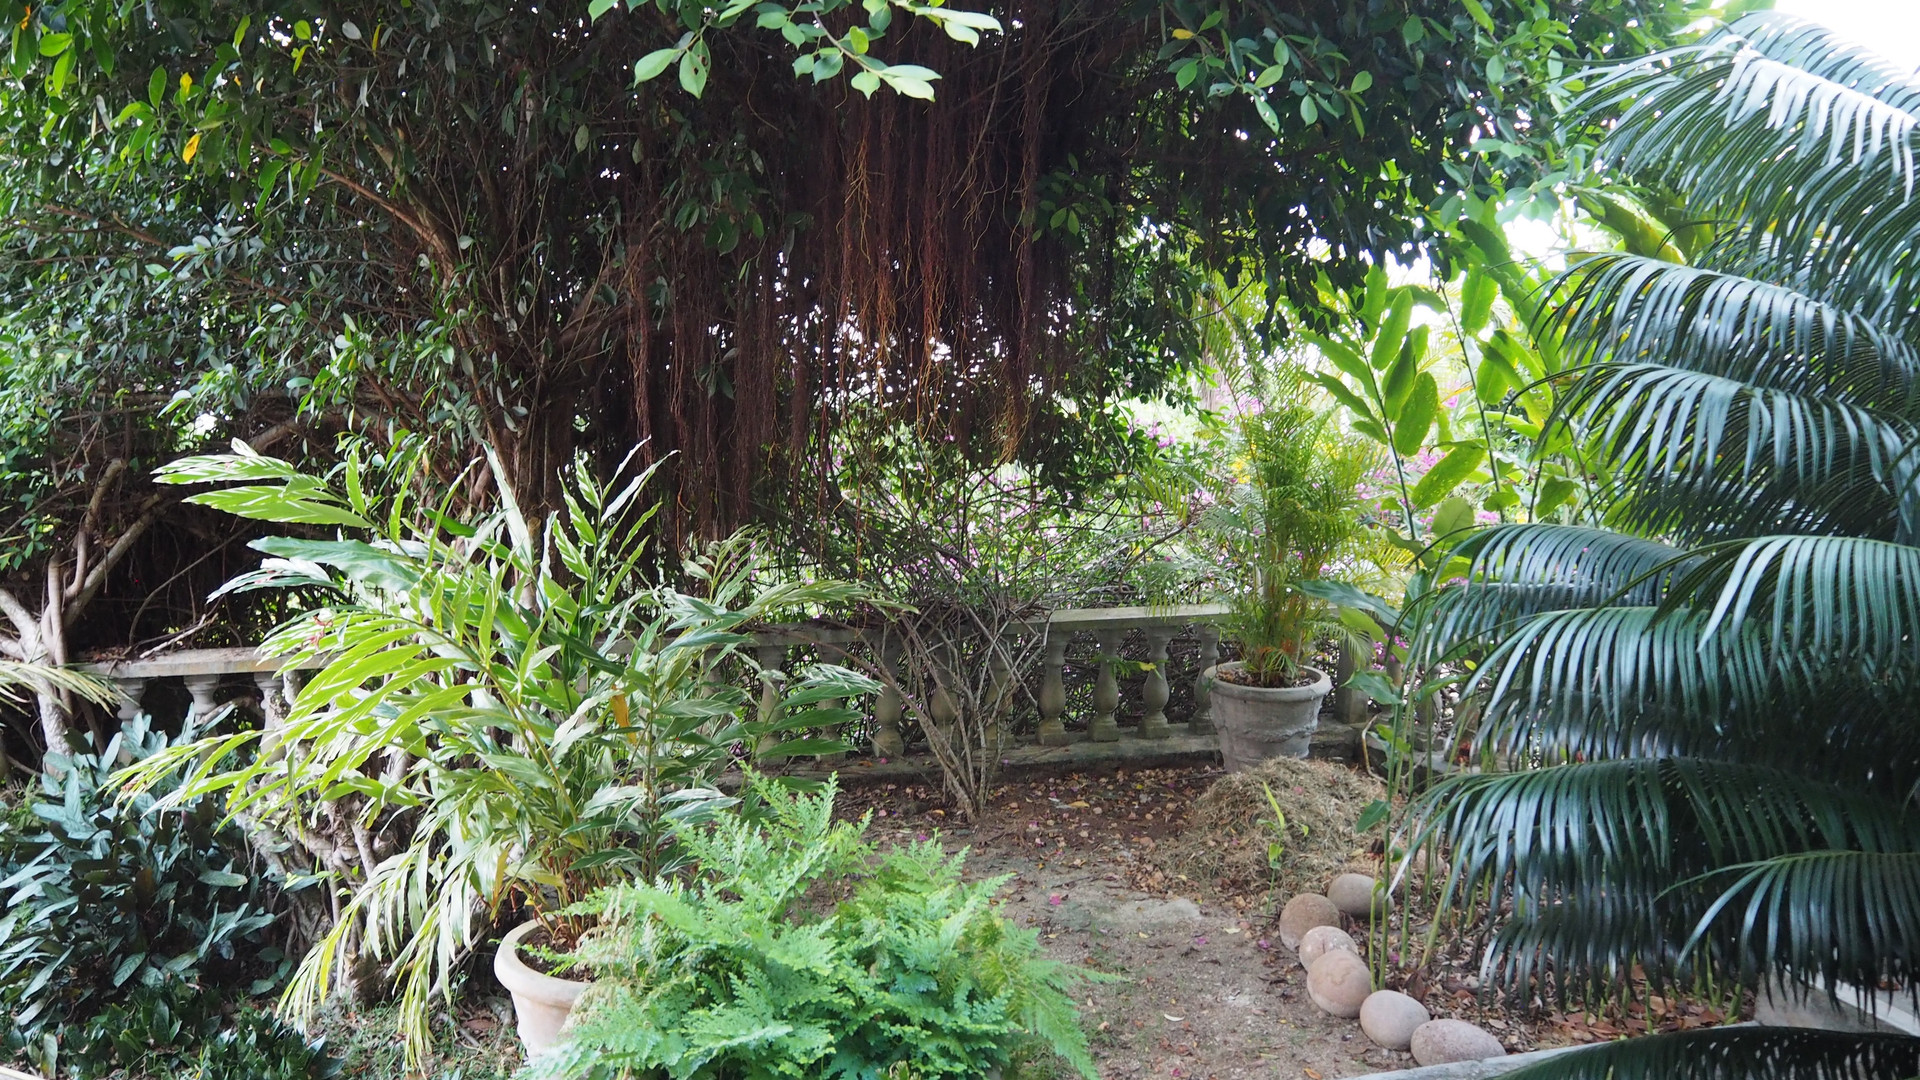 View from lower terrace over looking private driveway and into tropical garden